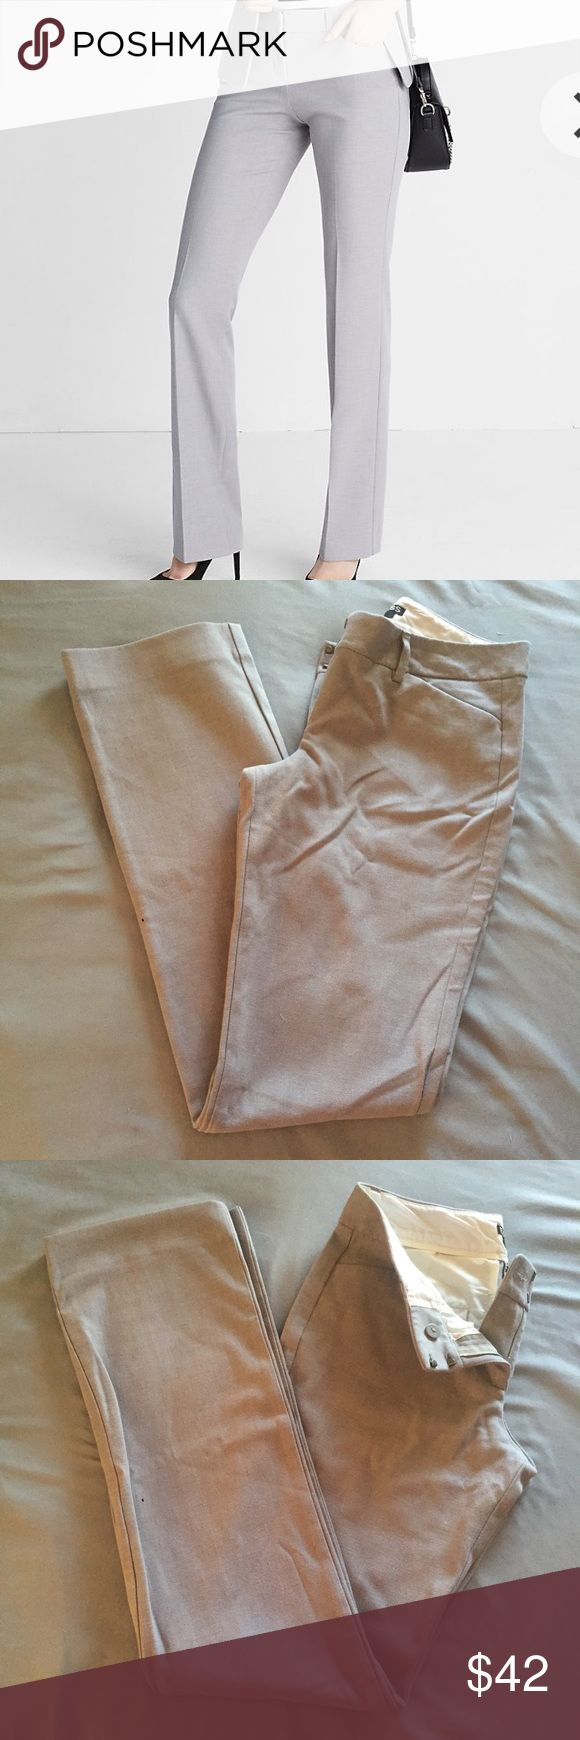 Express Editor Pants like new condition. same color and fit as picture. color is: muted stone. Express Pants Trousers